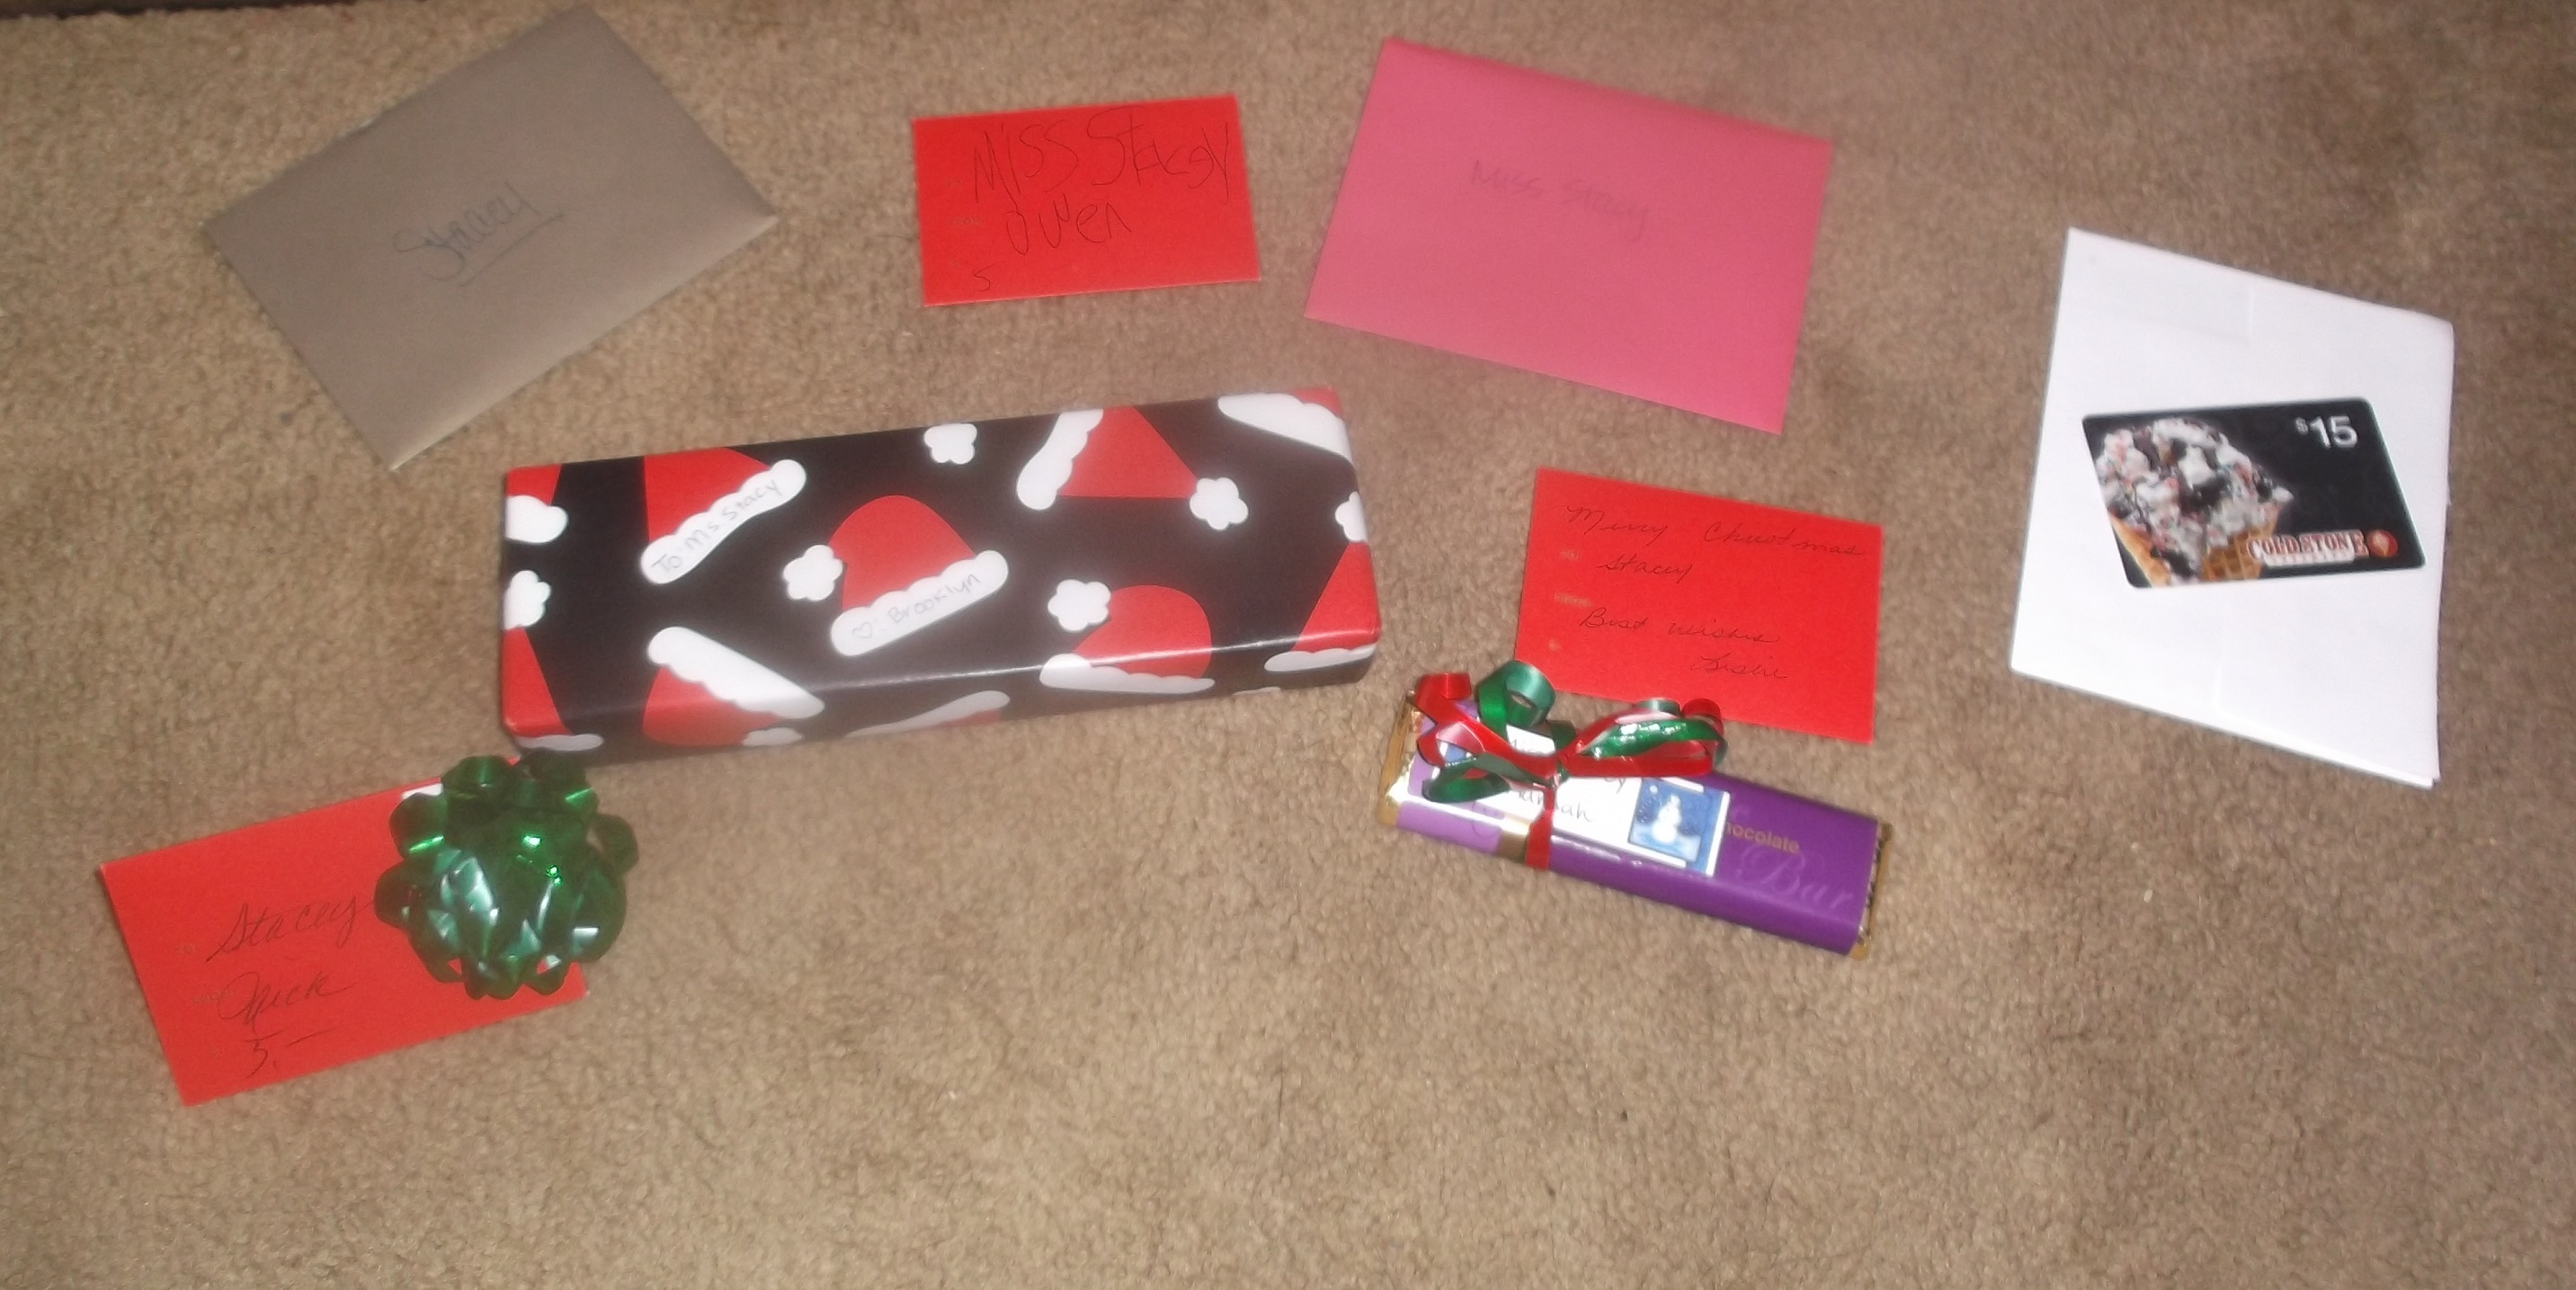 Photo I took of all of the gift cards and things that I got from kids/parents/my boss at work